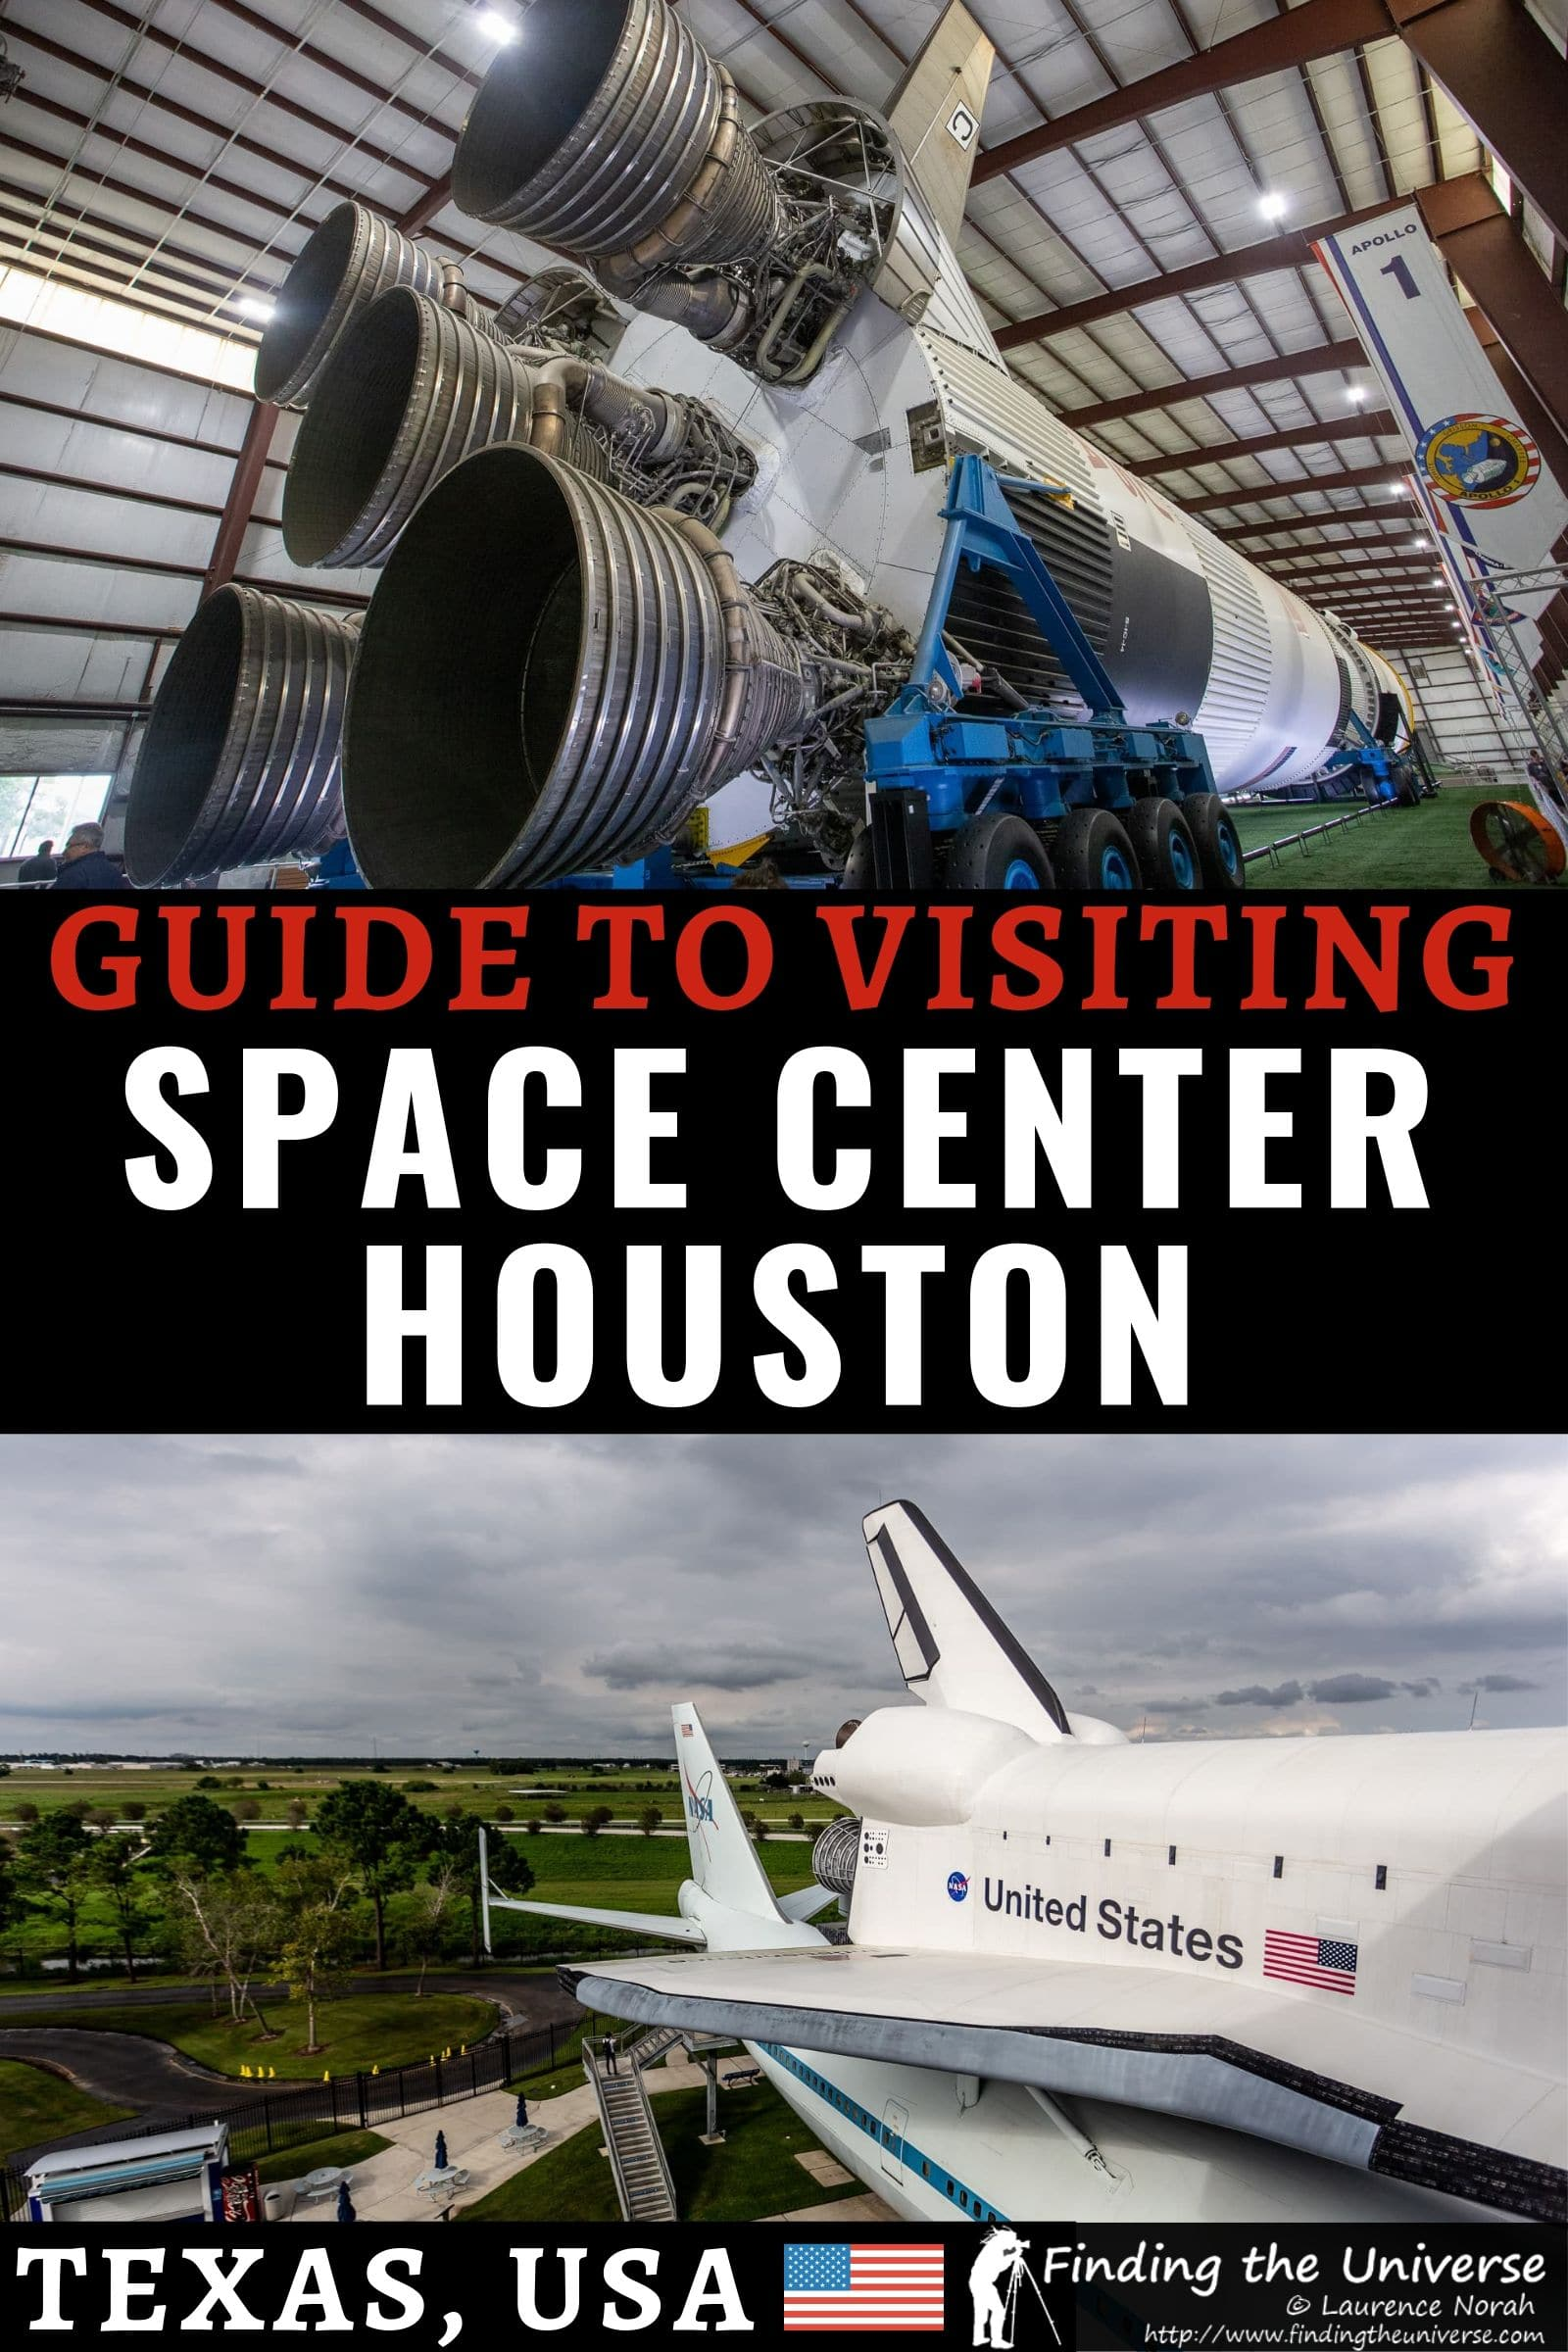 A detailed guide to visiting the Space Center in Houston. Has everything you need to know to plan your visit, including highlights, the tram tour, and more!